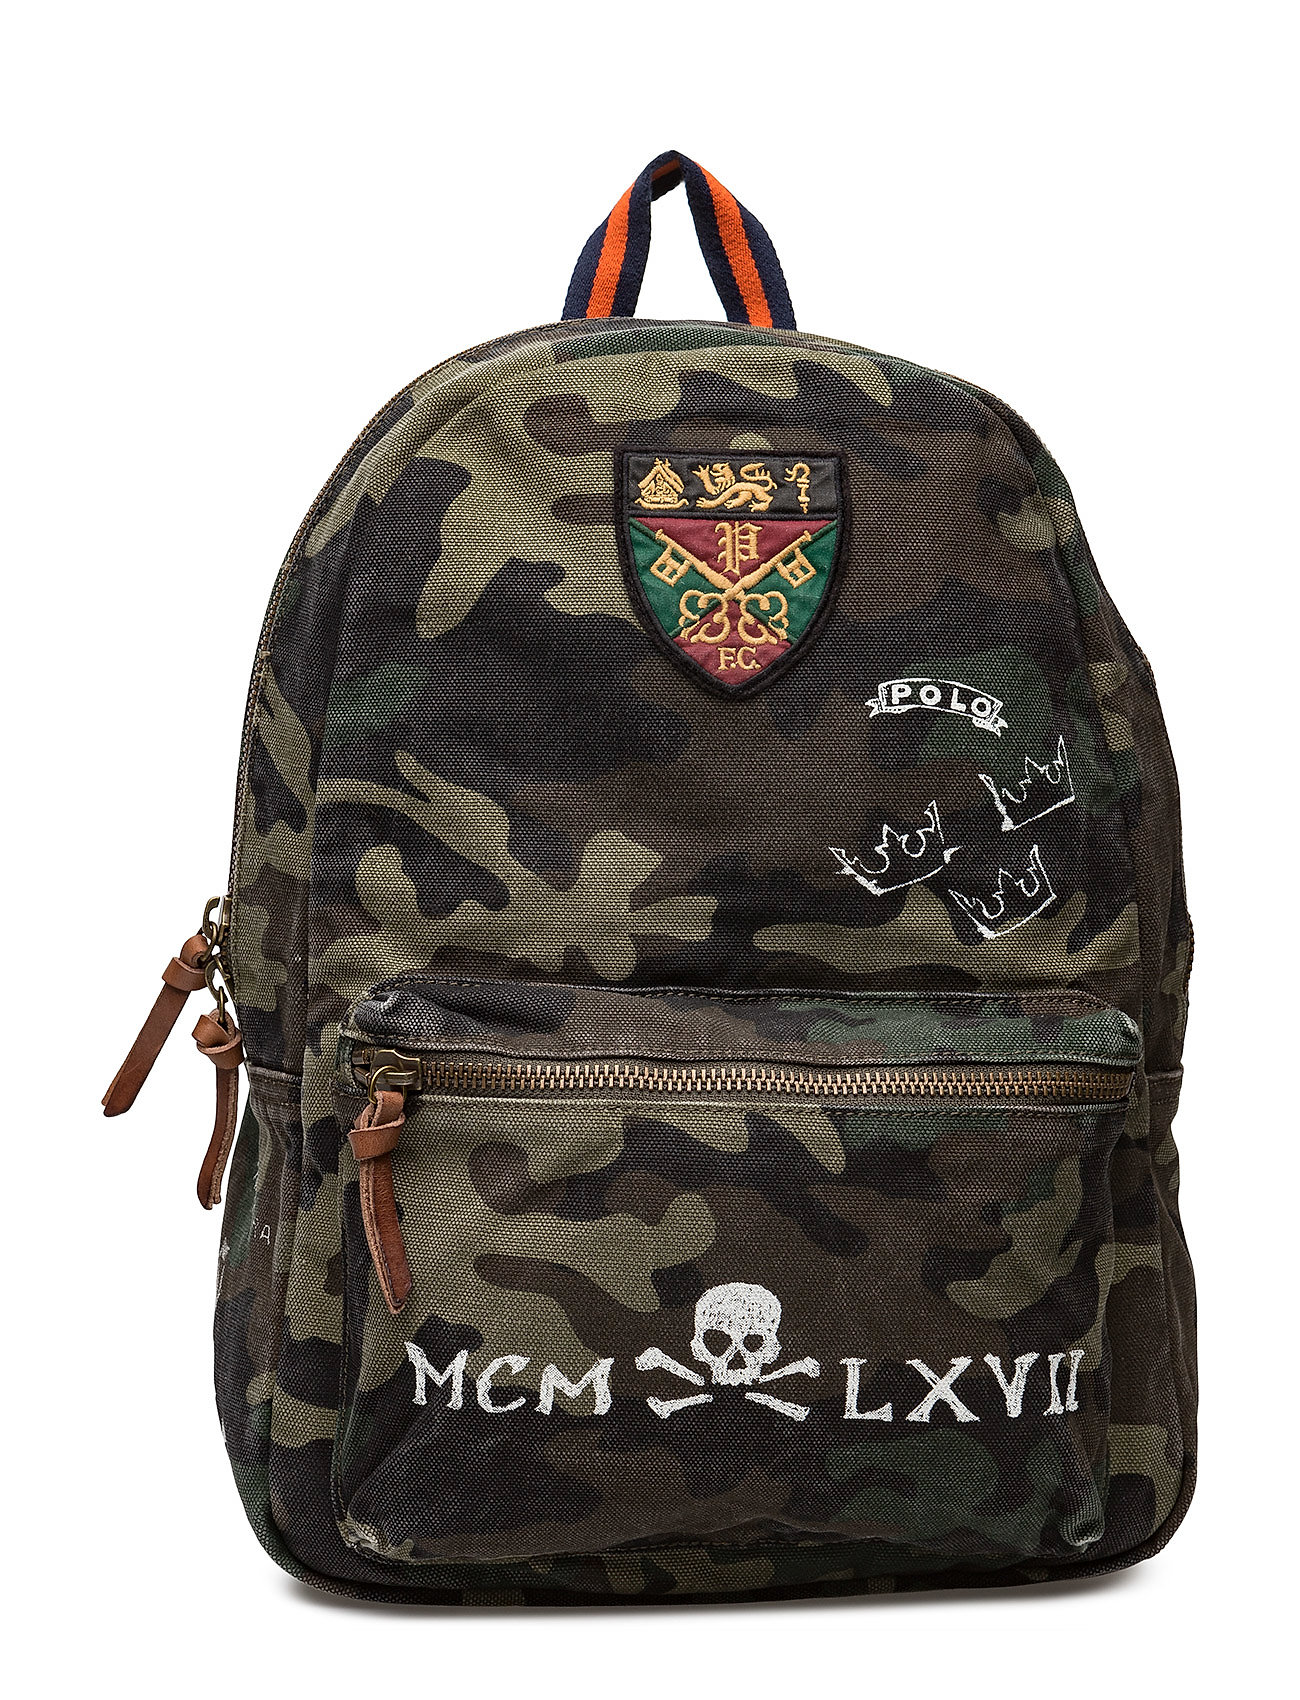 Polo ralph lauren crest patch camo canvas backpack jpg 1300x1700 Polo  canvas backpack 2f03fe046bbe5